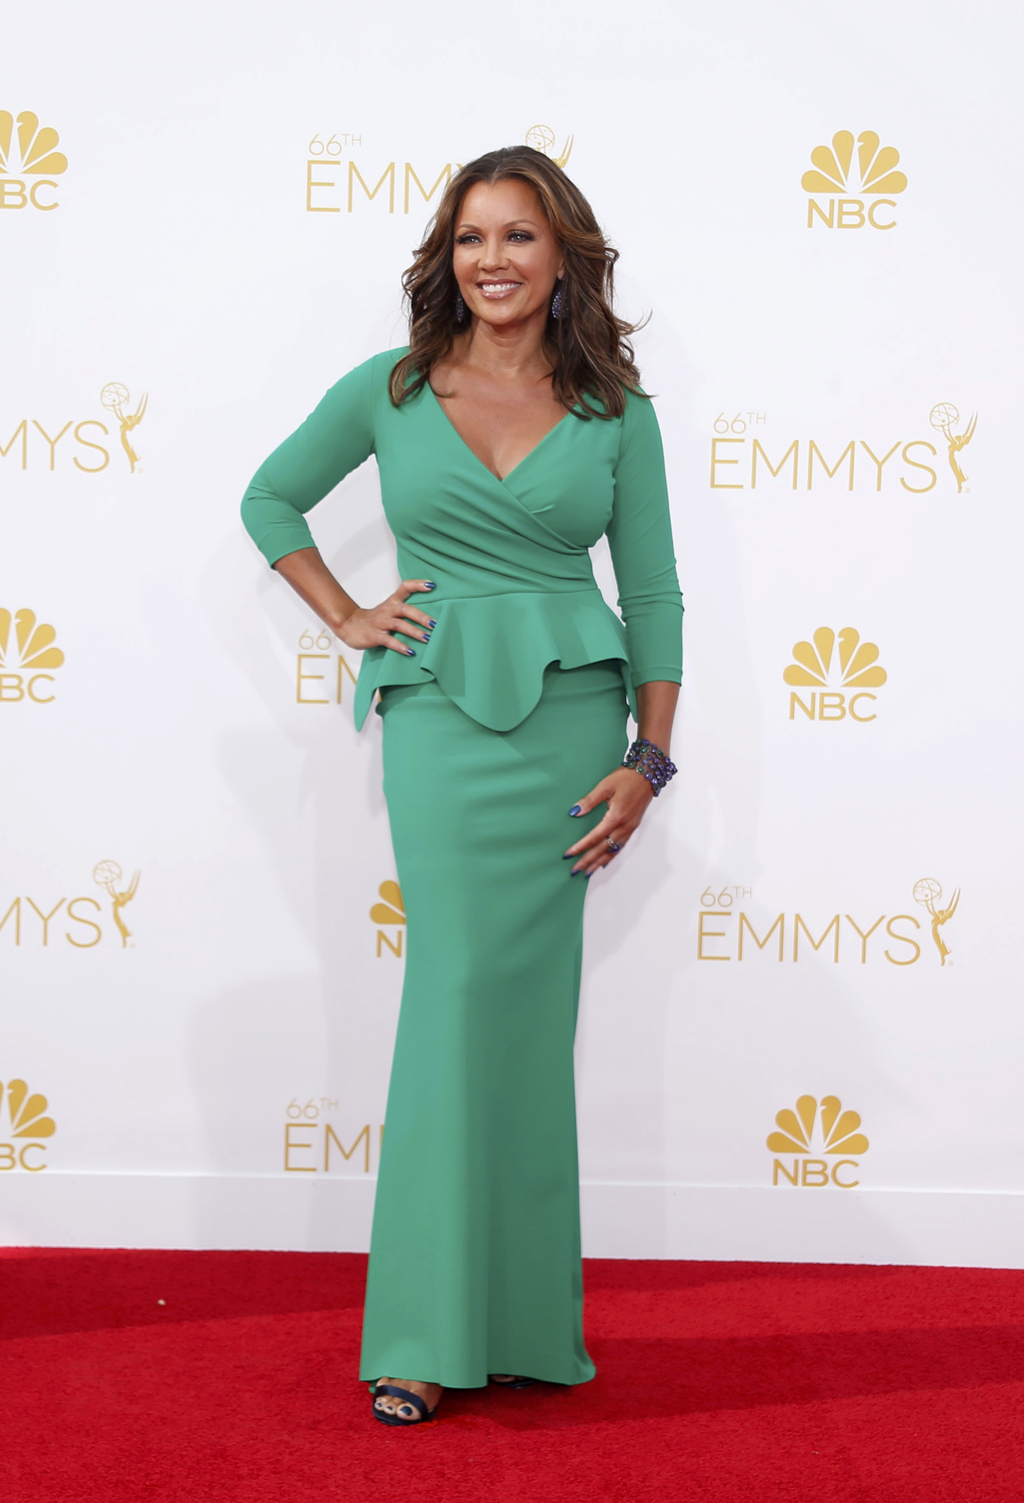 Vanessa Williams arrives at the 66th Primetime Emmy Awards in Los Angeles